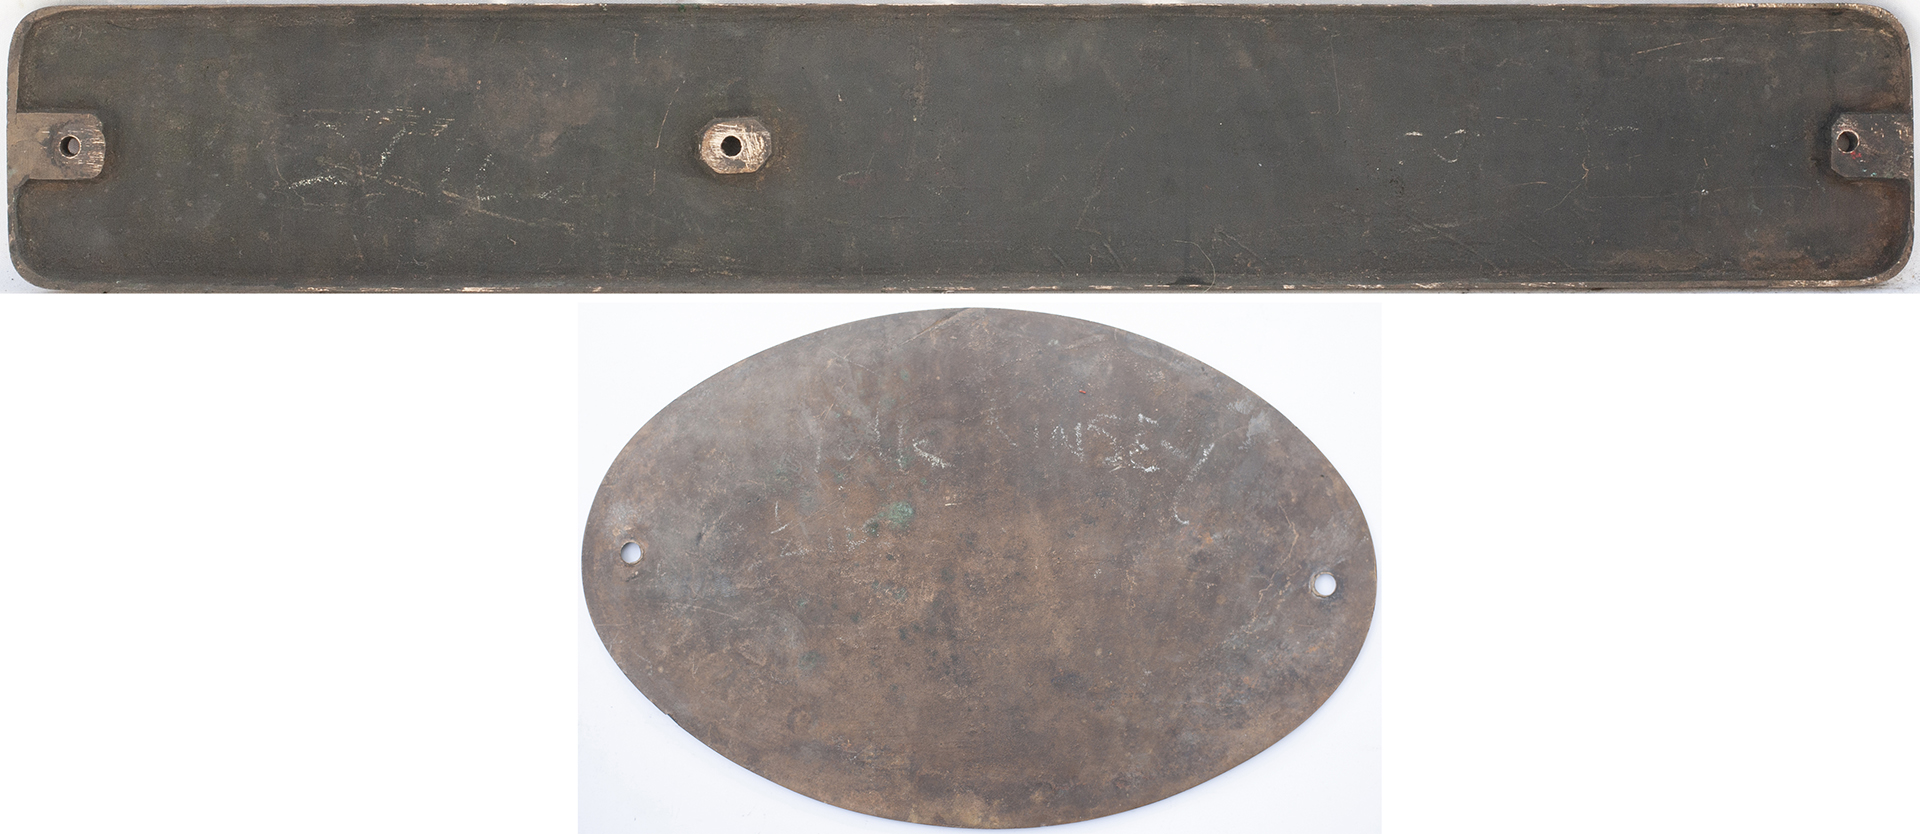 Nameplate WELDLESS together with its worksplate R&W HAWTHORN LESLIE & CO LTD ENGINEERS NEWCASTLE - Image 2 of 2